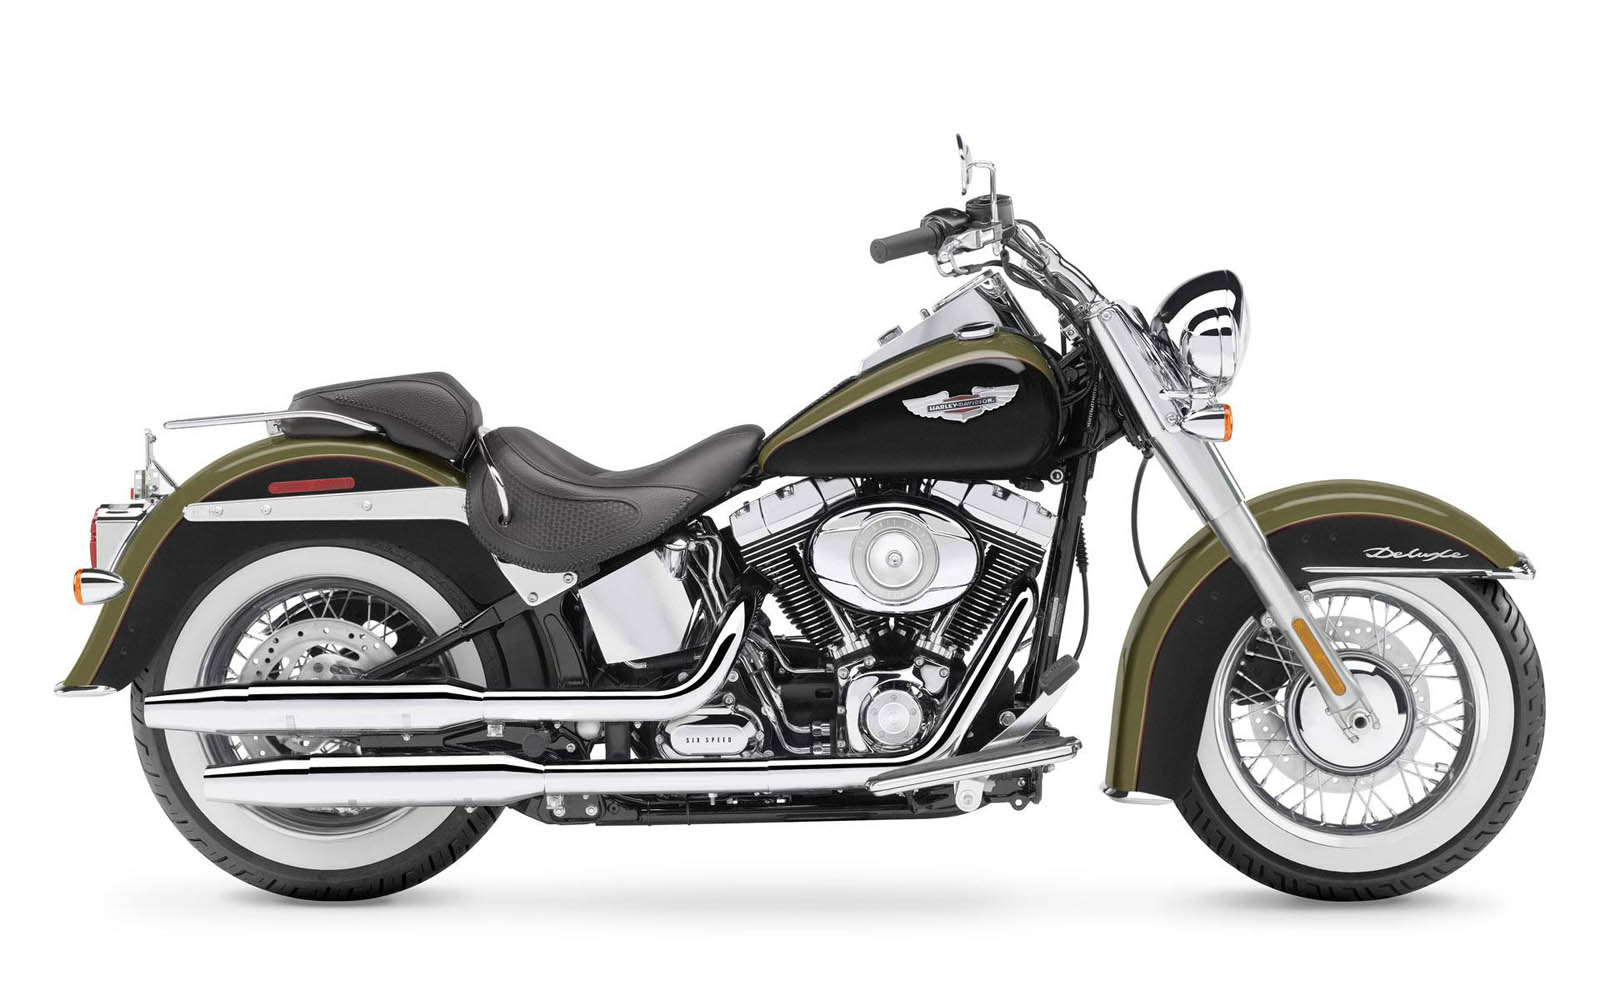 harley davidson harley davidson Check out cycle world's exclusive harley-davidson motorcycle reviews, tests, photos, news, latest bikes, in-depth analysis, and so much more learn more at cycleworldcom.